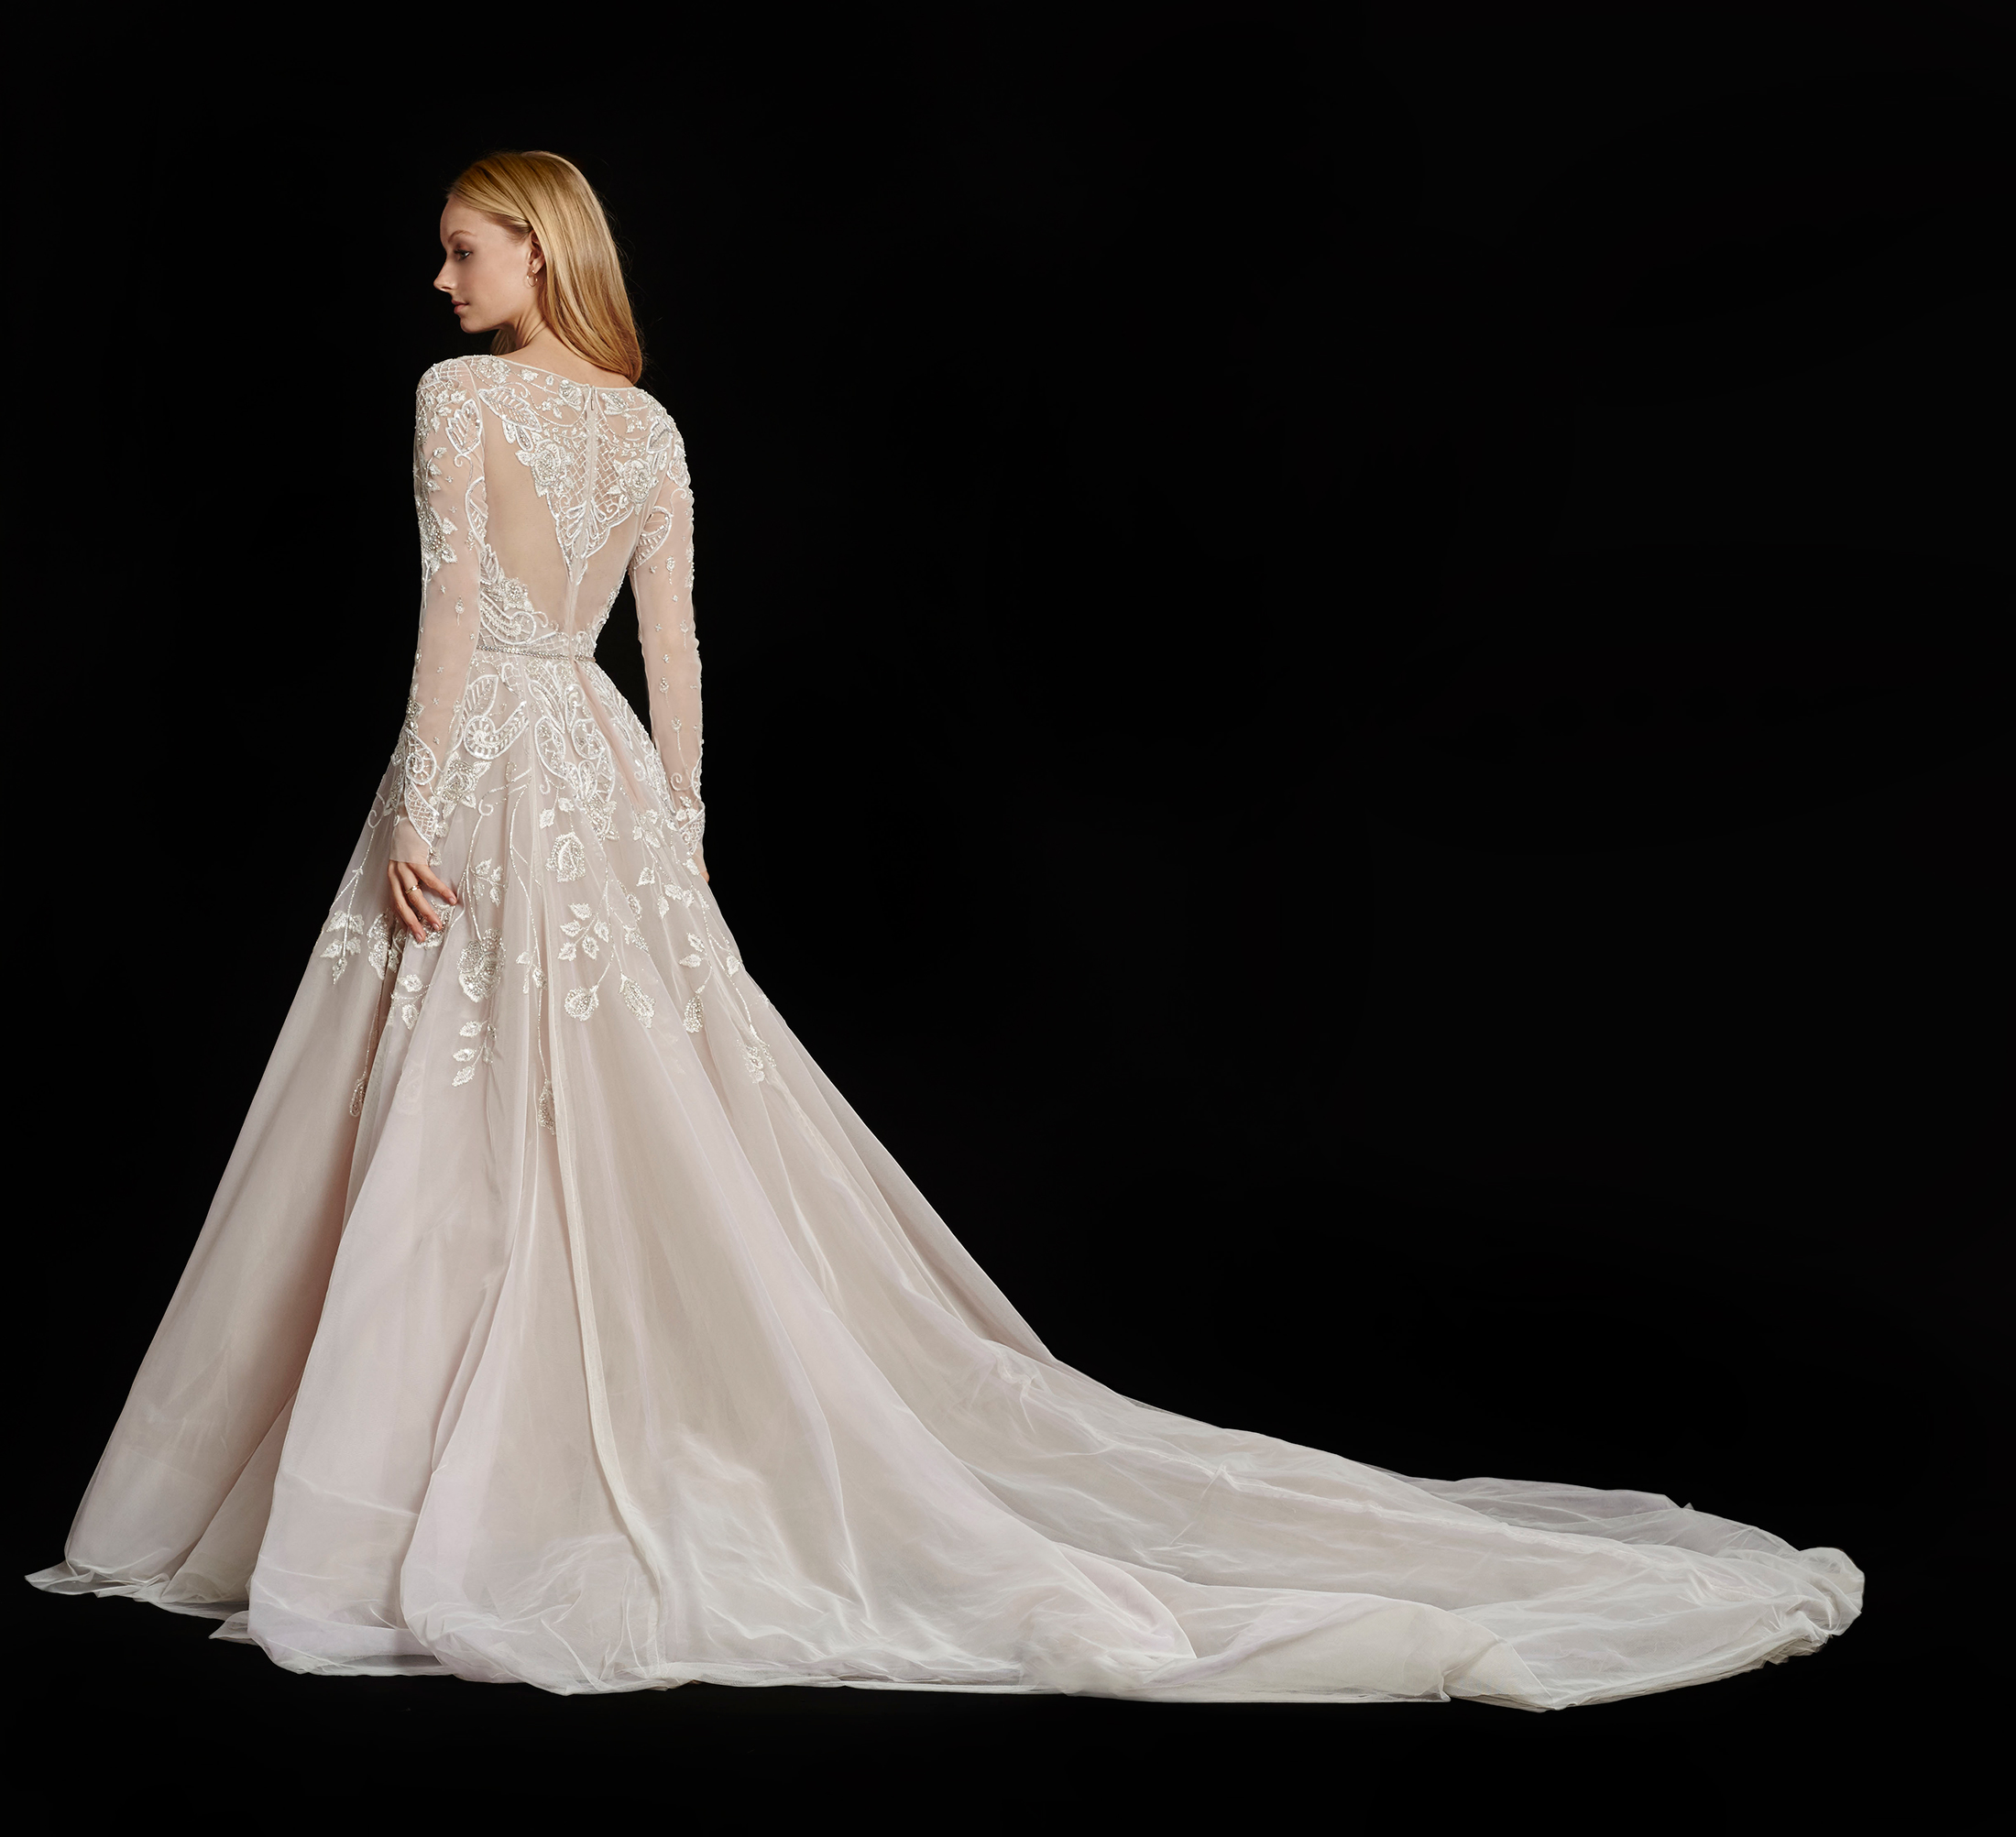 Hphayley bridal gown dallas texas stardust celebrations for Hayley paige wedding dress prices